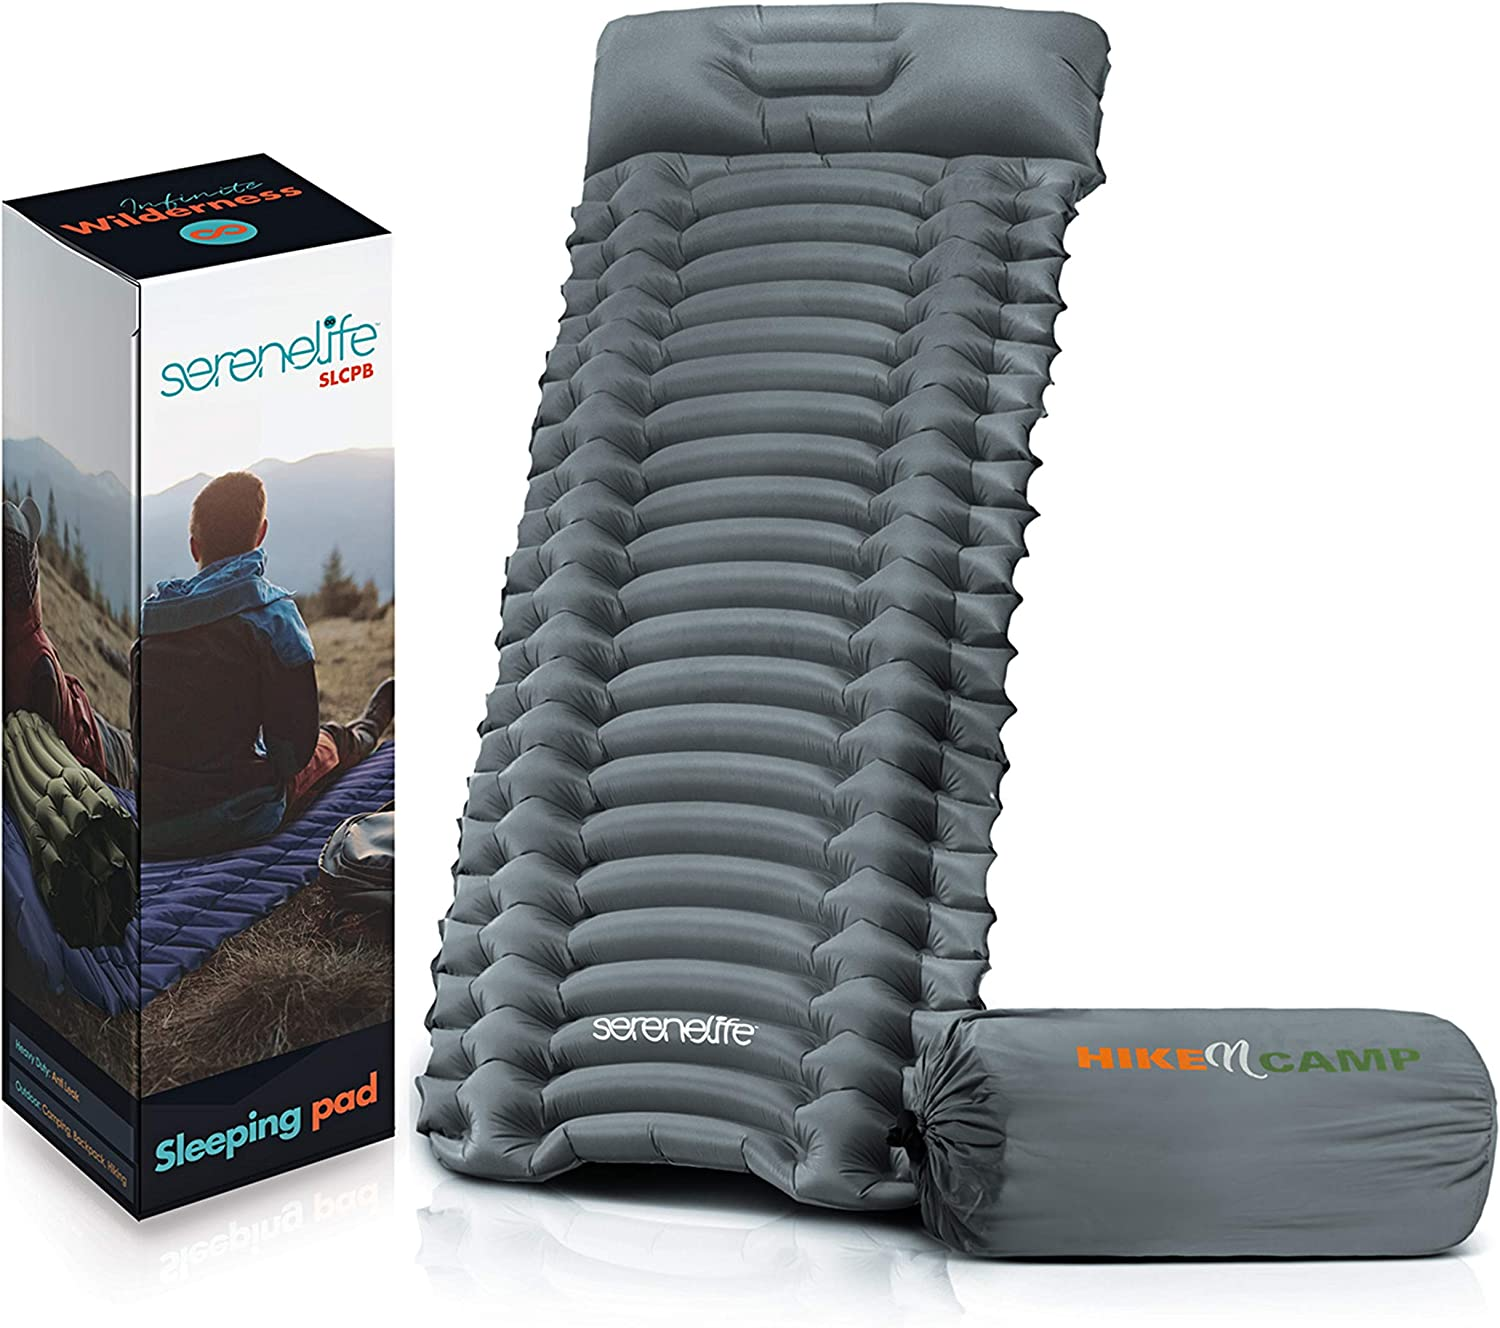 Backpacking Air Mattress Sleeping Pad - Self Inflating Waterproof Lightweight Sleep Pad Inflatable Camping Sleeping Mat w/Carrying Bag - for Camping, Backpacking, Hiking - Serenelife SLCPB (Blue)